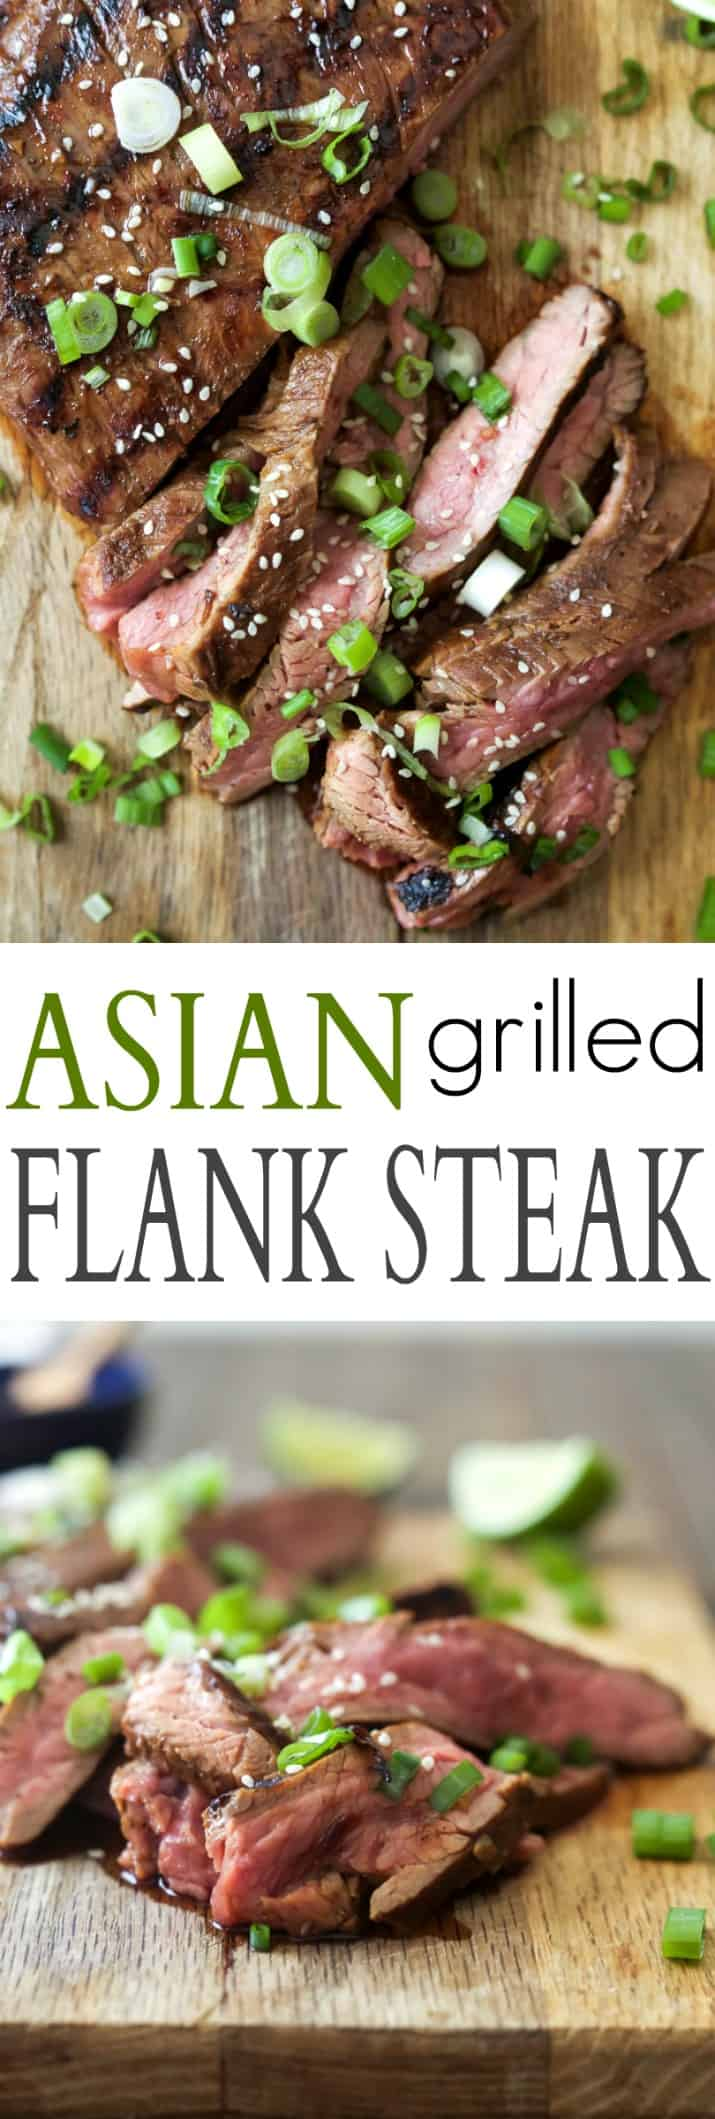 Asian Grilled Flank Steak | Easy Healthy Recipes Using ...